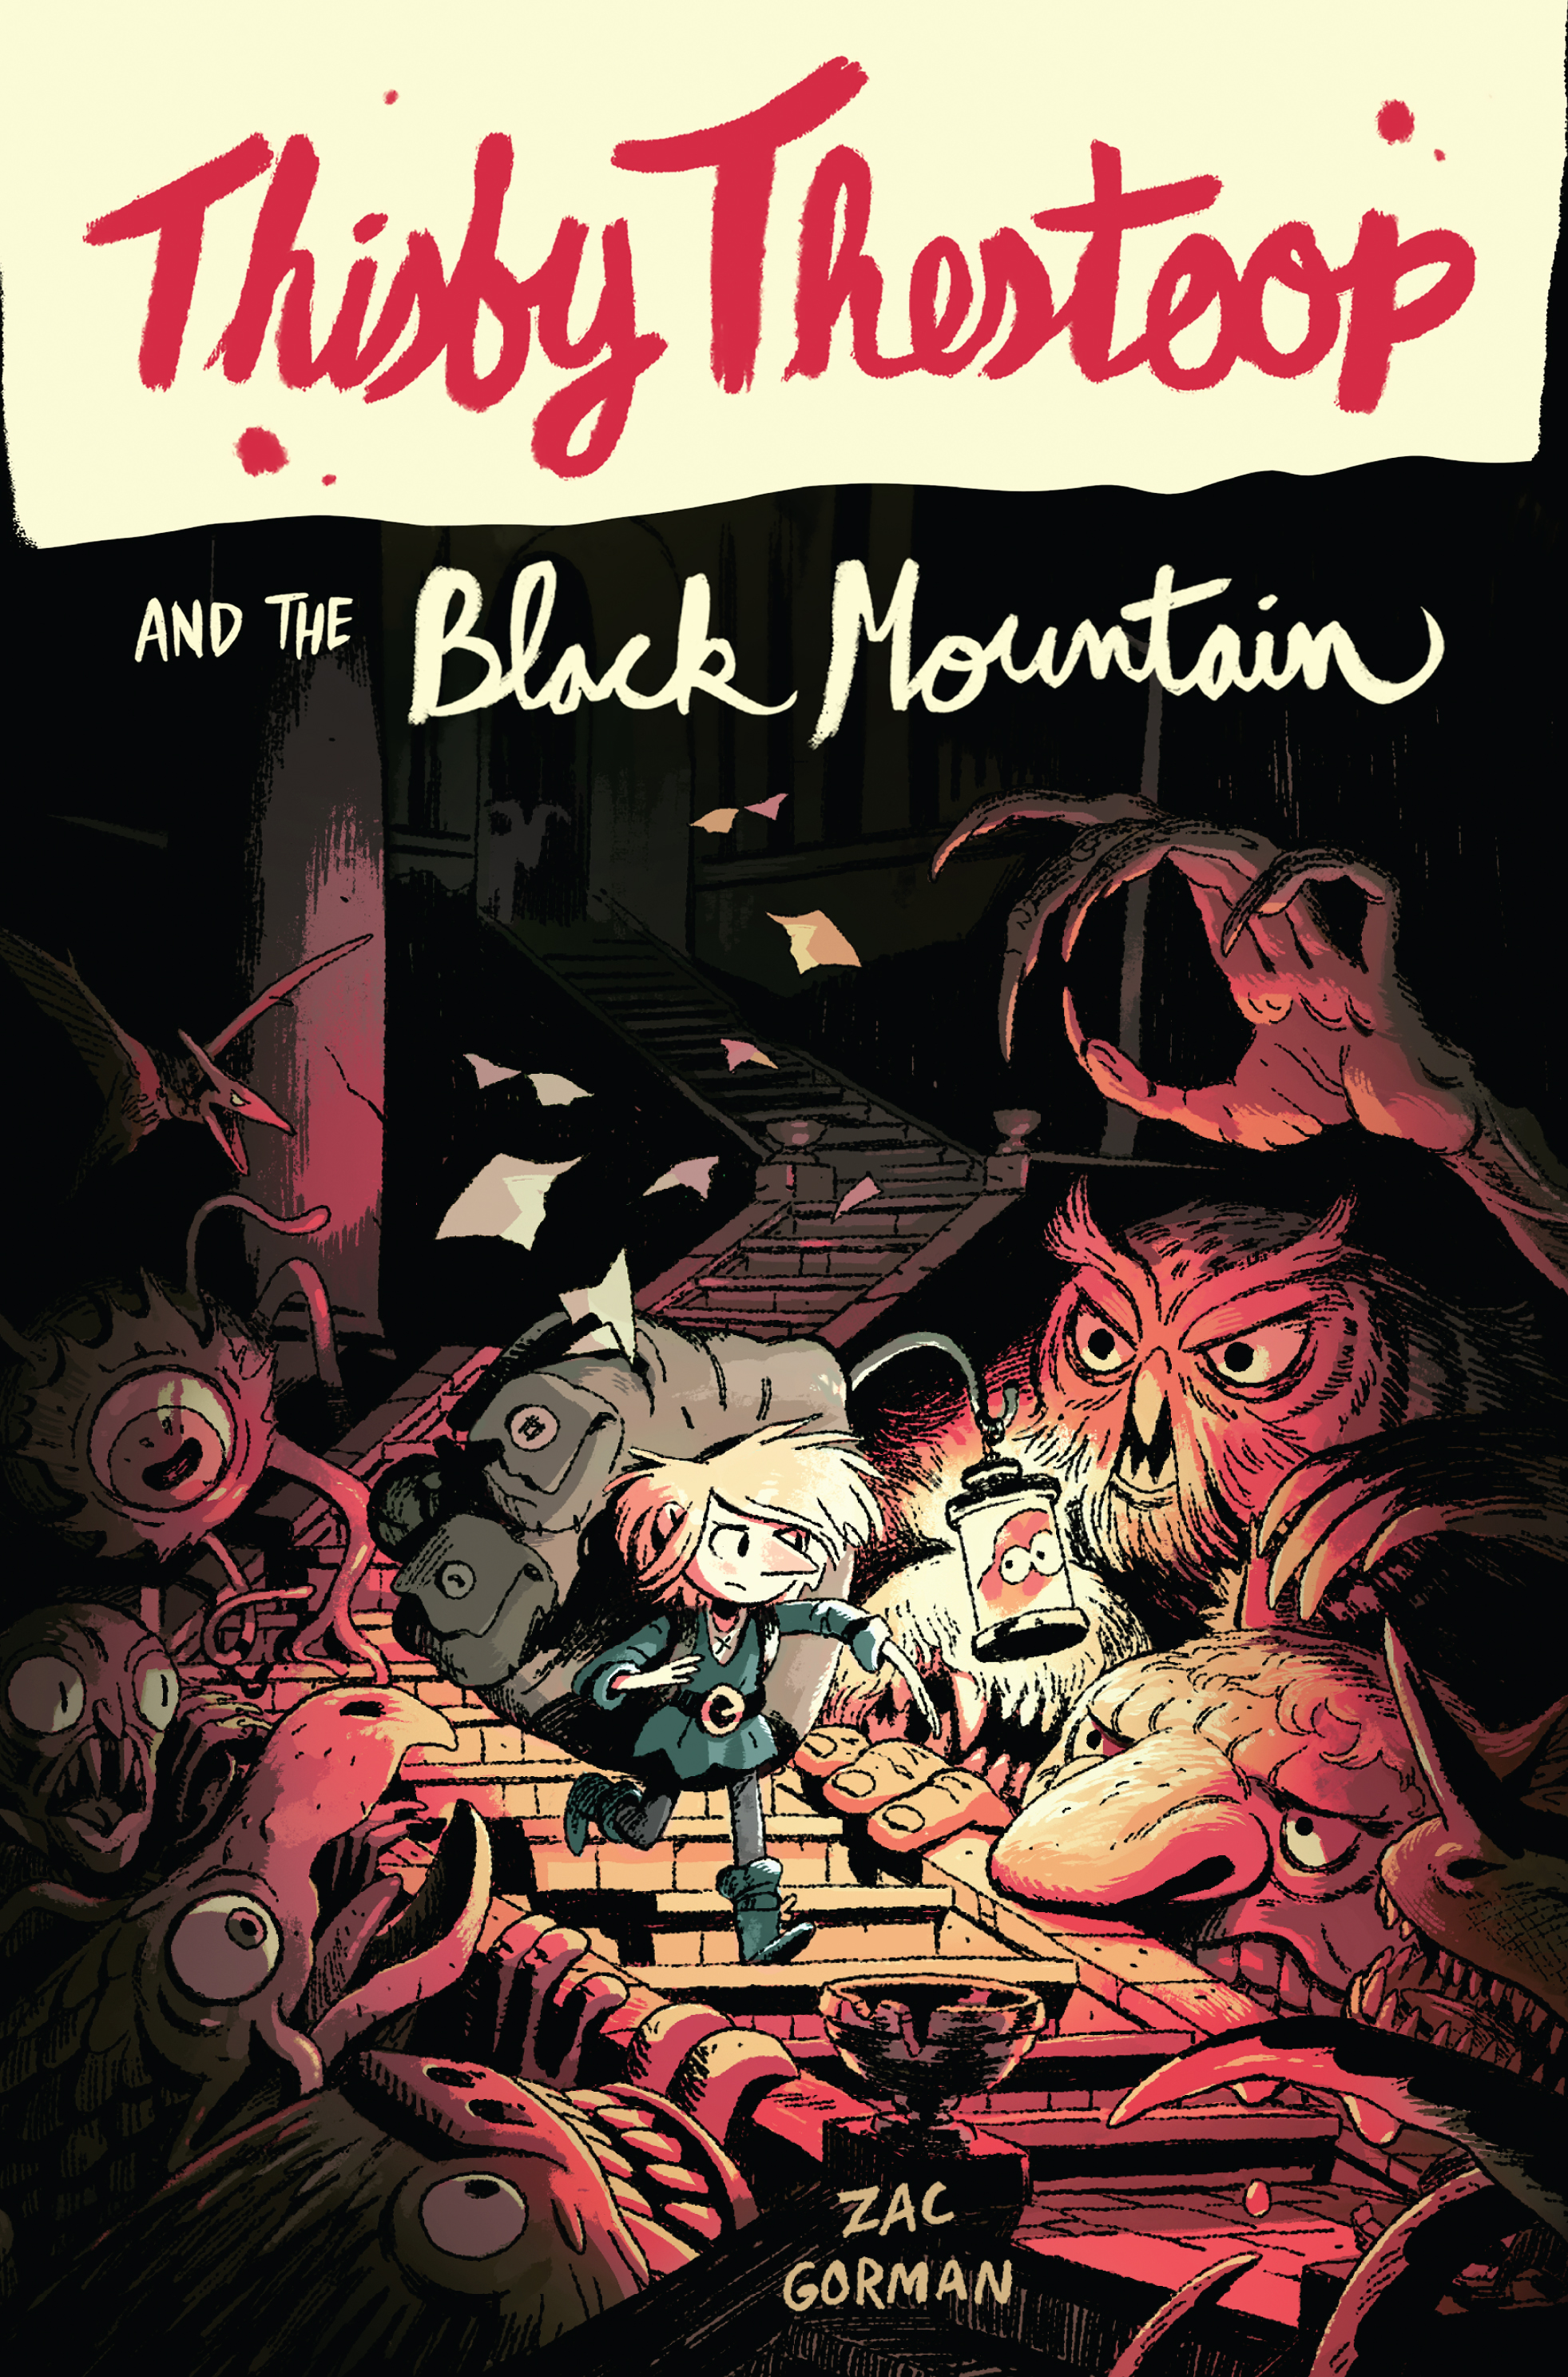 - THISBY THESTOOP and the Black Mountain(HarperCollins, April 2018)Translations:France (Editions Milan)On any given day, Thisby Thestoop can be found up to her nose in griffin toenails, gnoll spittle, and troll meat (to give to them, not made of them). And now, as the gamekeeper for the Black Mountain dungeon, Thisby has been roped into another job—saving the princess's skin.When the prince and princess arrive for a Royal Inspection, Princess Iphigenia winds up lost in the tunnels of the dungeon—without her guards or her younger twin brother—and it's up to Thisby to guide her safely past the hoards of minotaurs, wyverns, ghouls, and who-knows-what-else that would love nothing more than to nosh the royal highness for dinner.Thisby and Iphigenia have a dangerous adventure ahead of them. If they're going to rescue the missing prince, stop a mounting war, and keep safe all the creatures who call the mountain dungeon home, they'll have to learn how to trust each other.